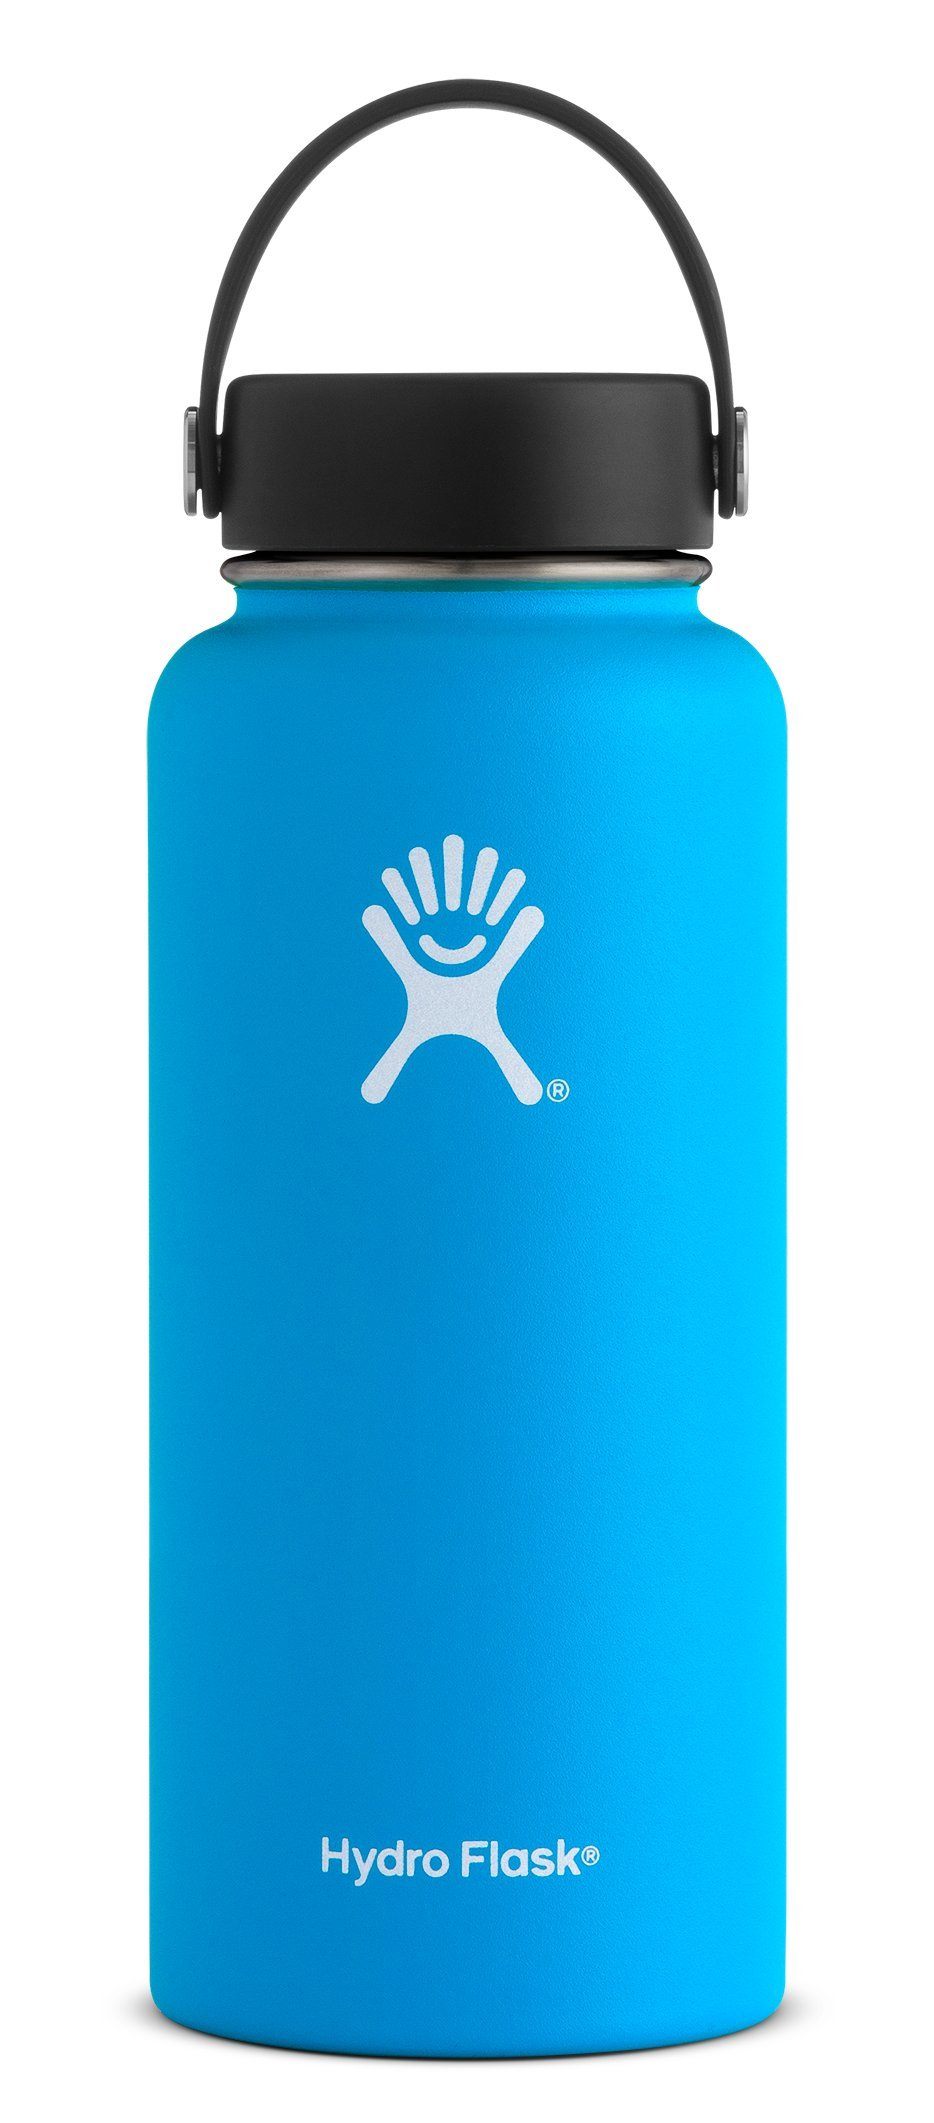 Hydro Flask 32 oz Water Bottle - Stainless Steel & Vacuum Insulated - Wide Mouth with Leak Proof Flex Cap - Pacific by Hydro Flask